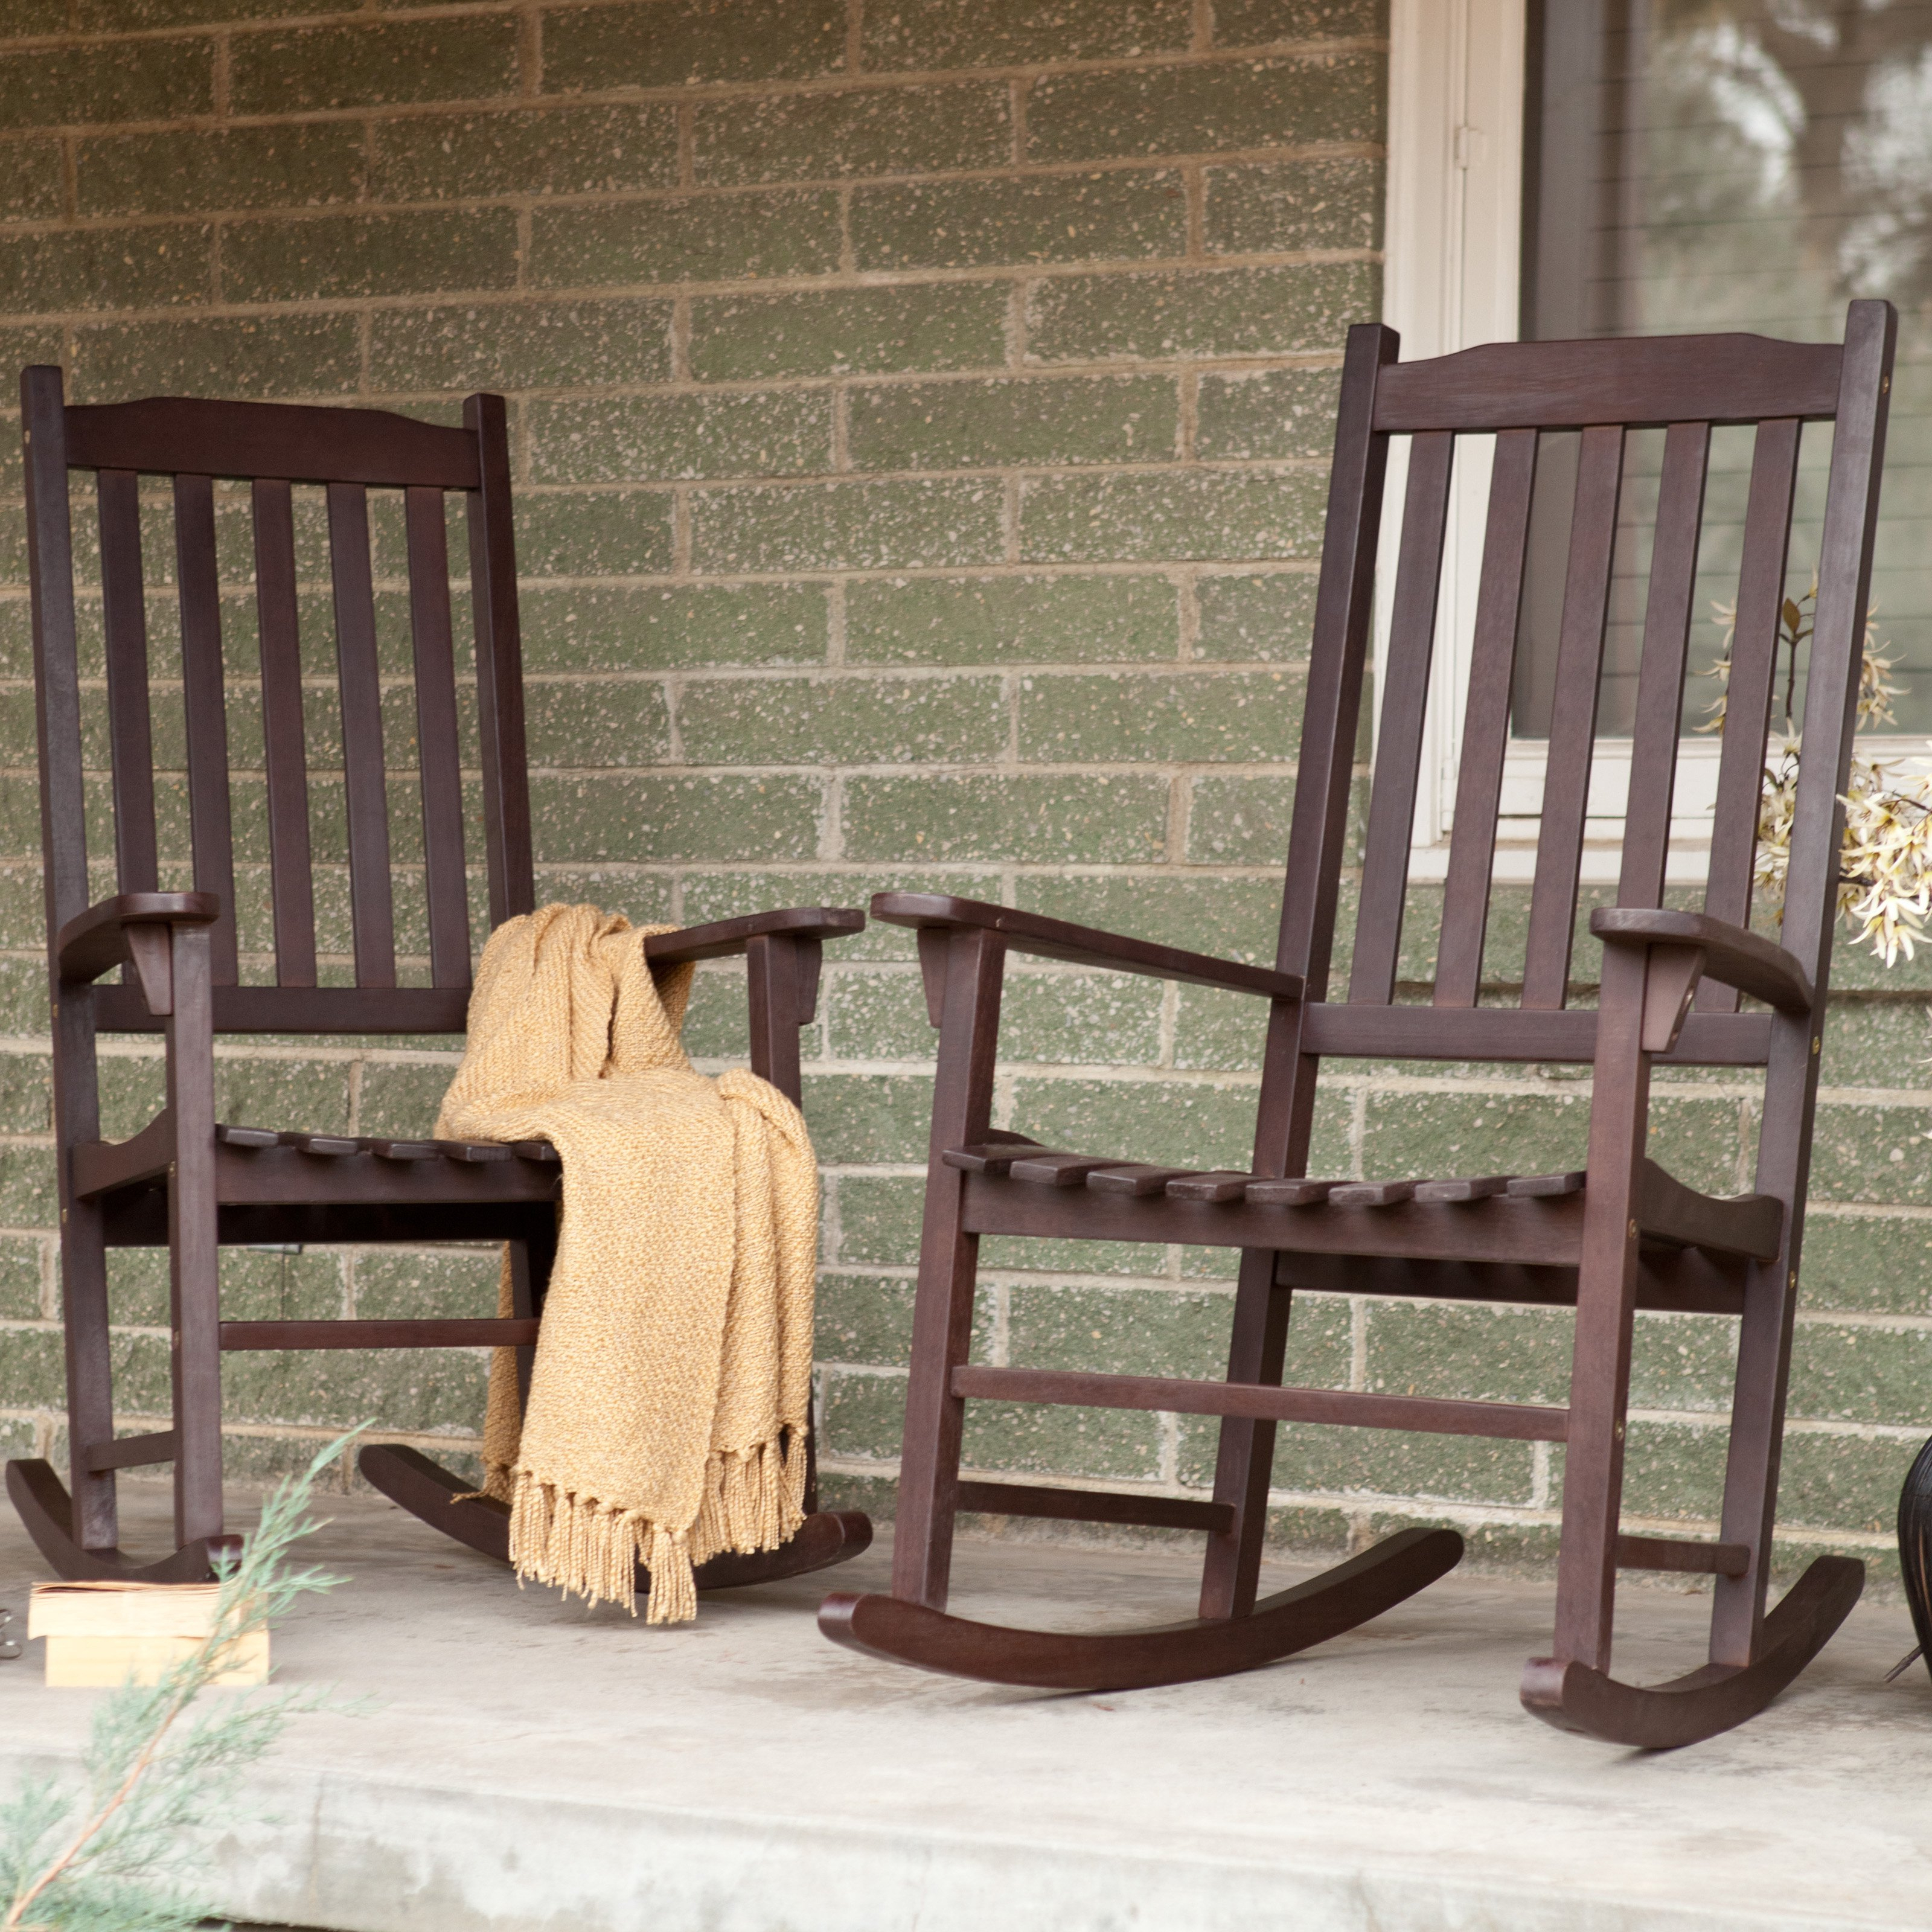 Inspiration about Mission Style Rocking Chair: History And Designs | Homesfeed In Mission Design Wood Rocking Chairs With Brown Leather Seat (#8 of 20)